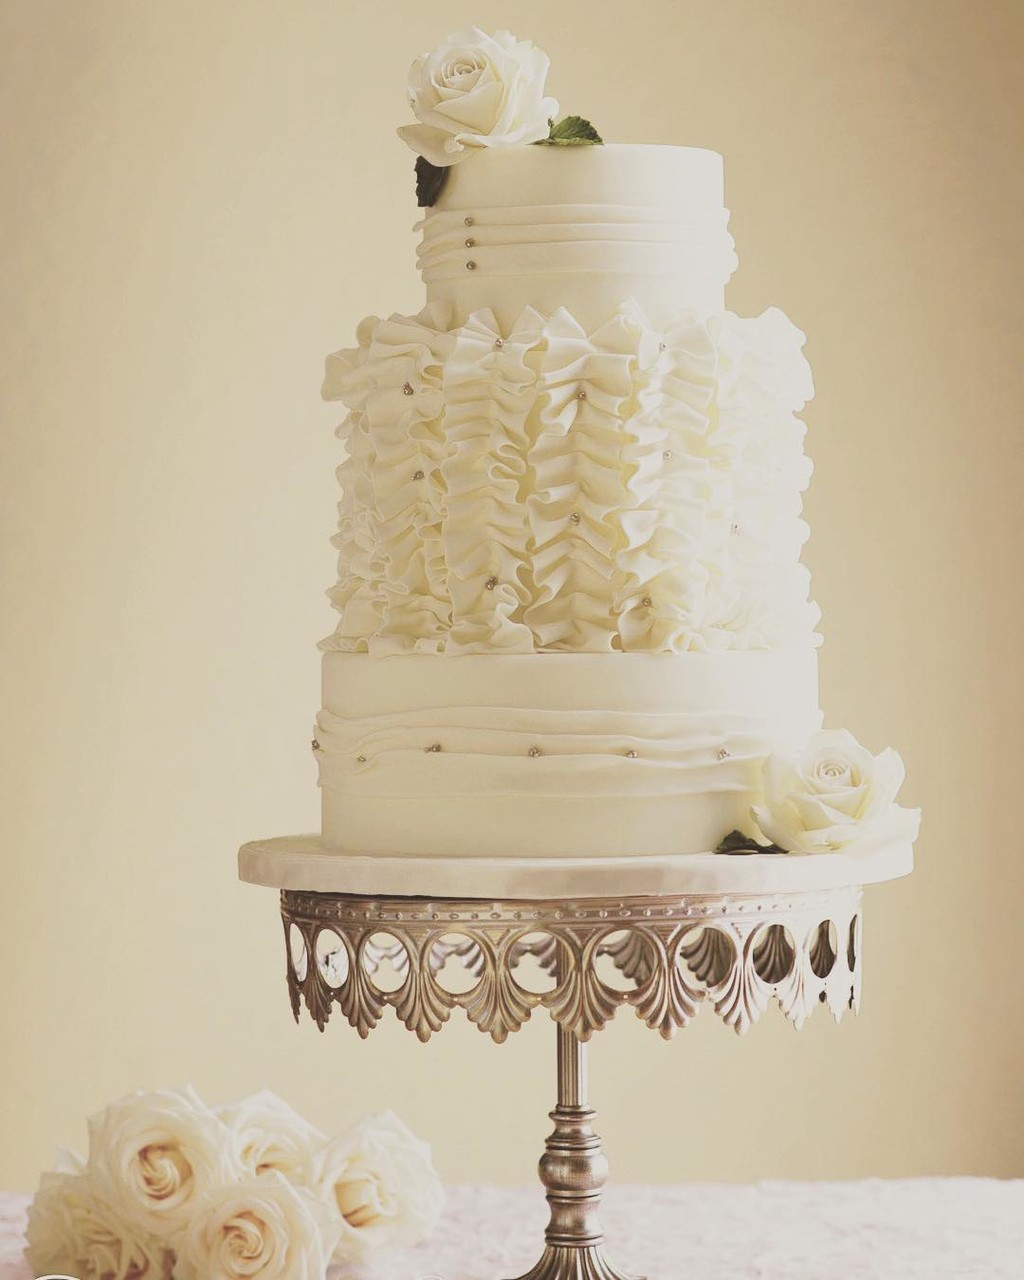 Lovely Wedding Cake by @cakesbyarelys on our Antique Silver Crown